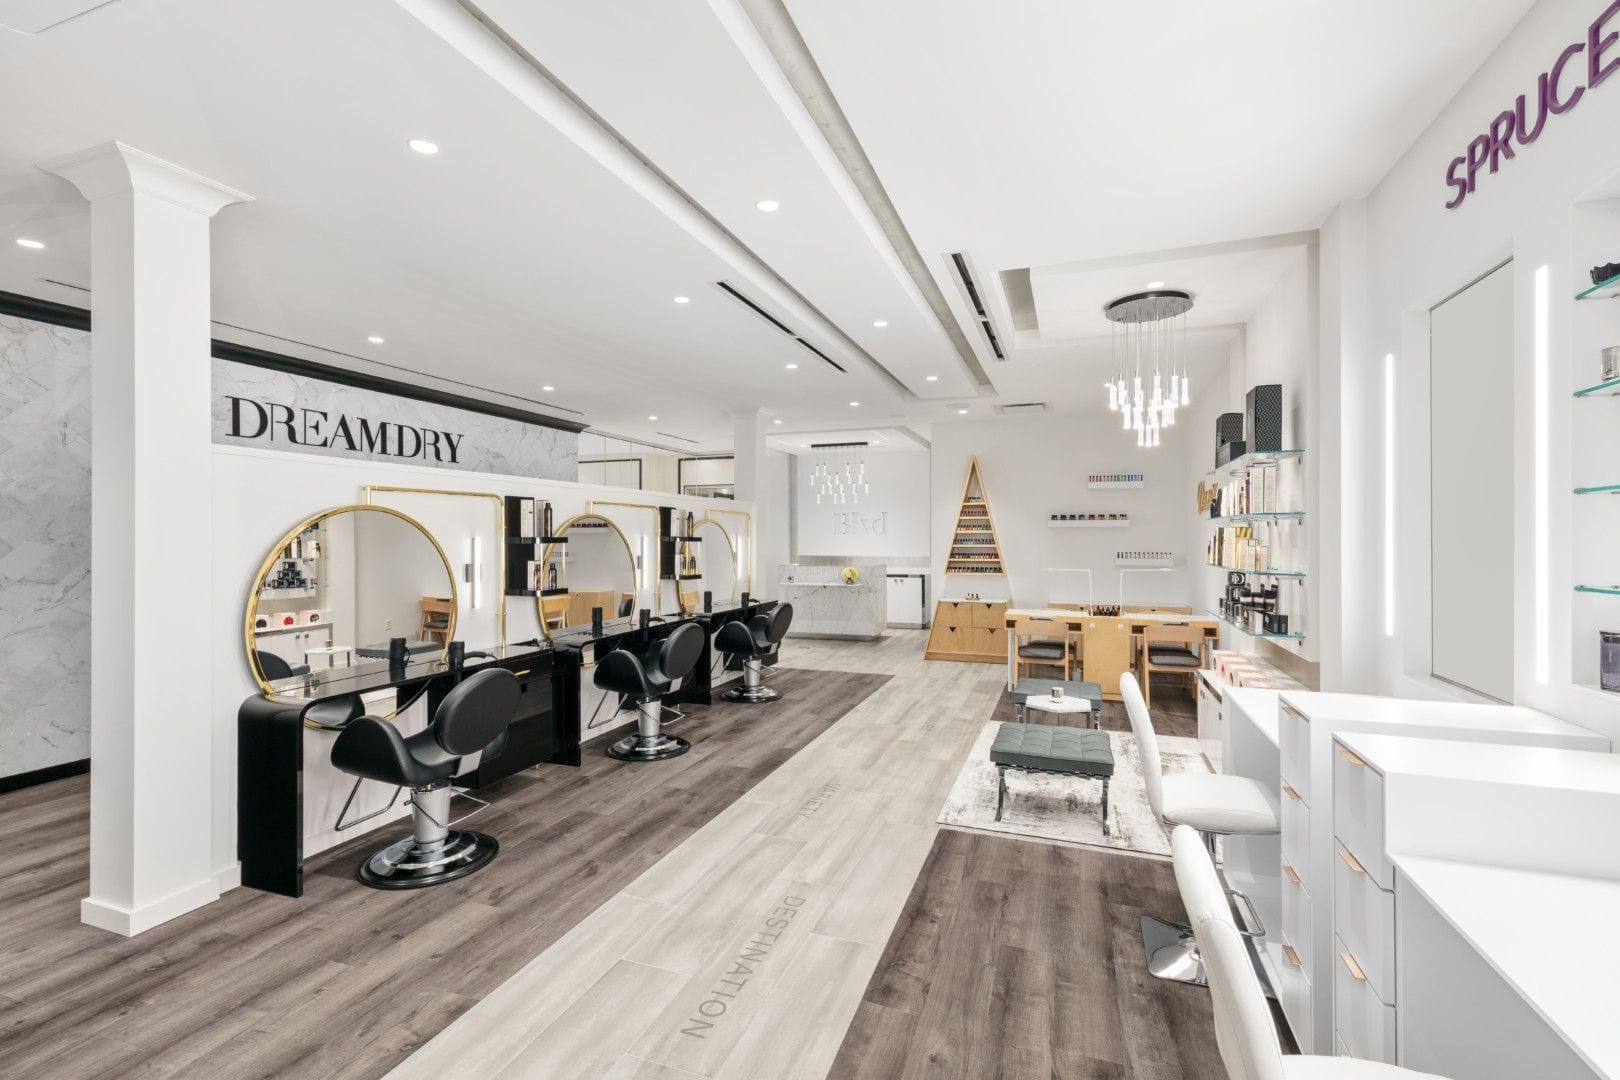 Neiman Marcus Brings Luxury BLVD Salon to The Mall at Short Hills - Best of NJ: The Best of NJ, All in One Place